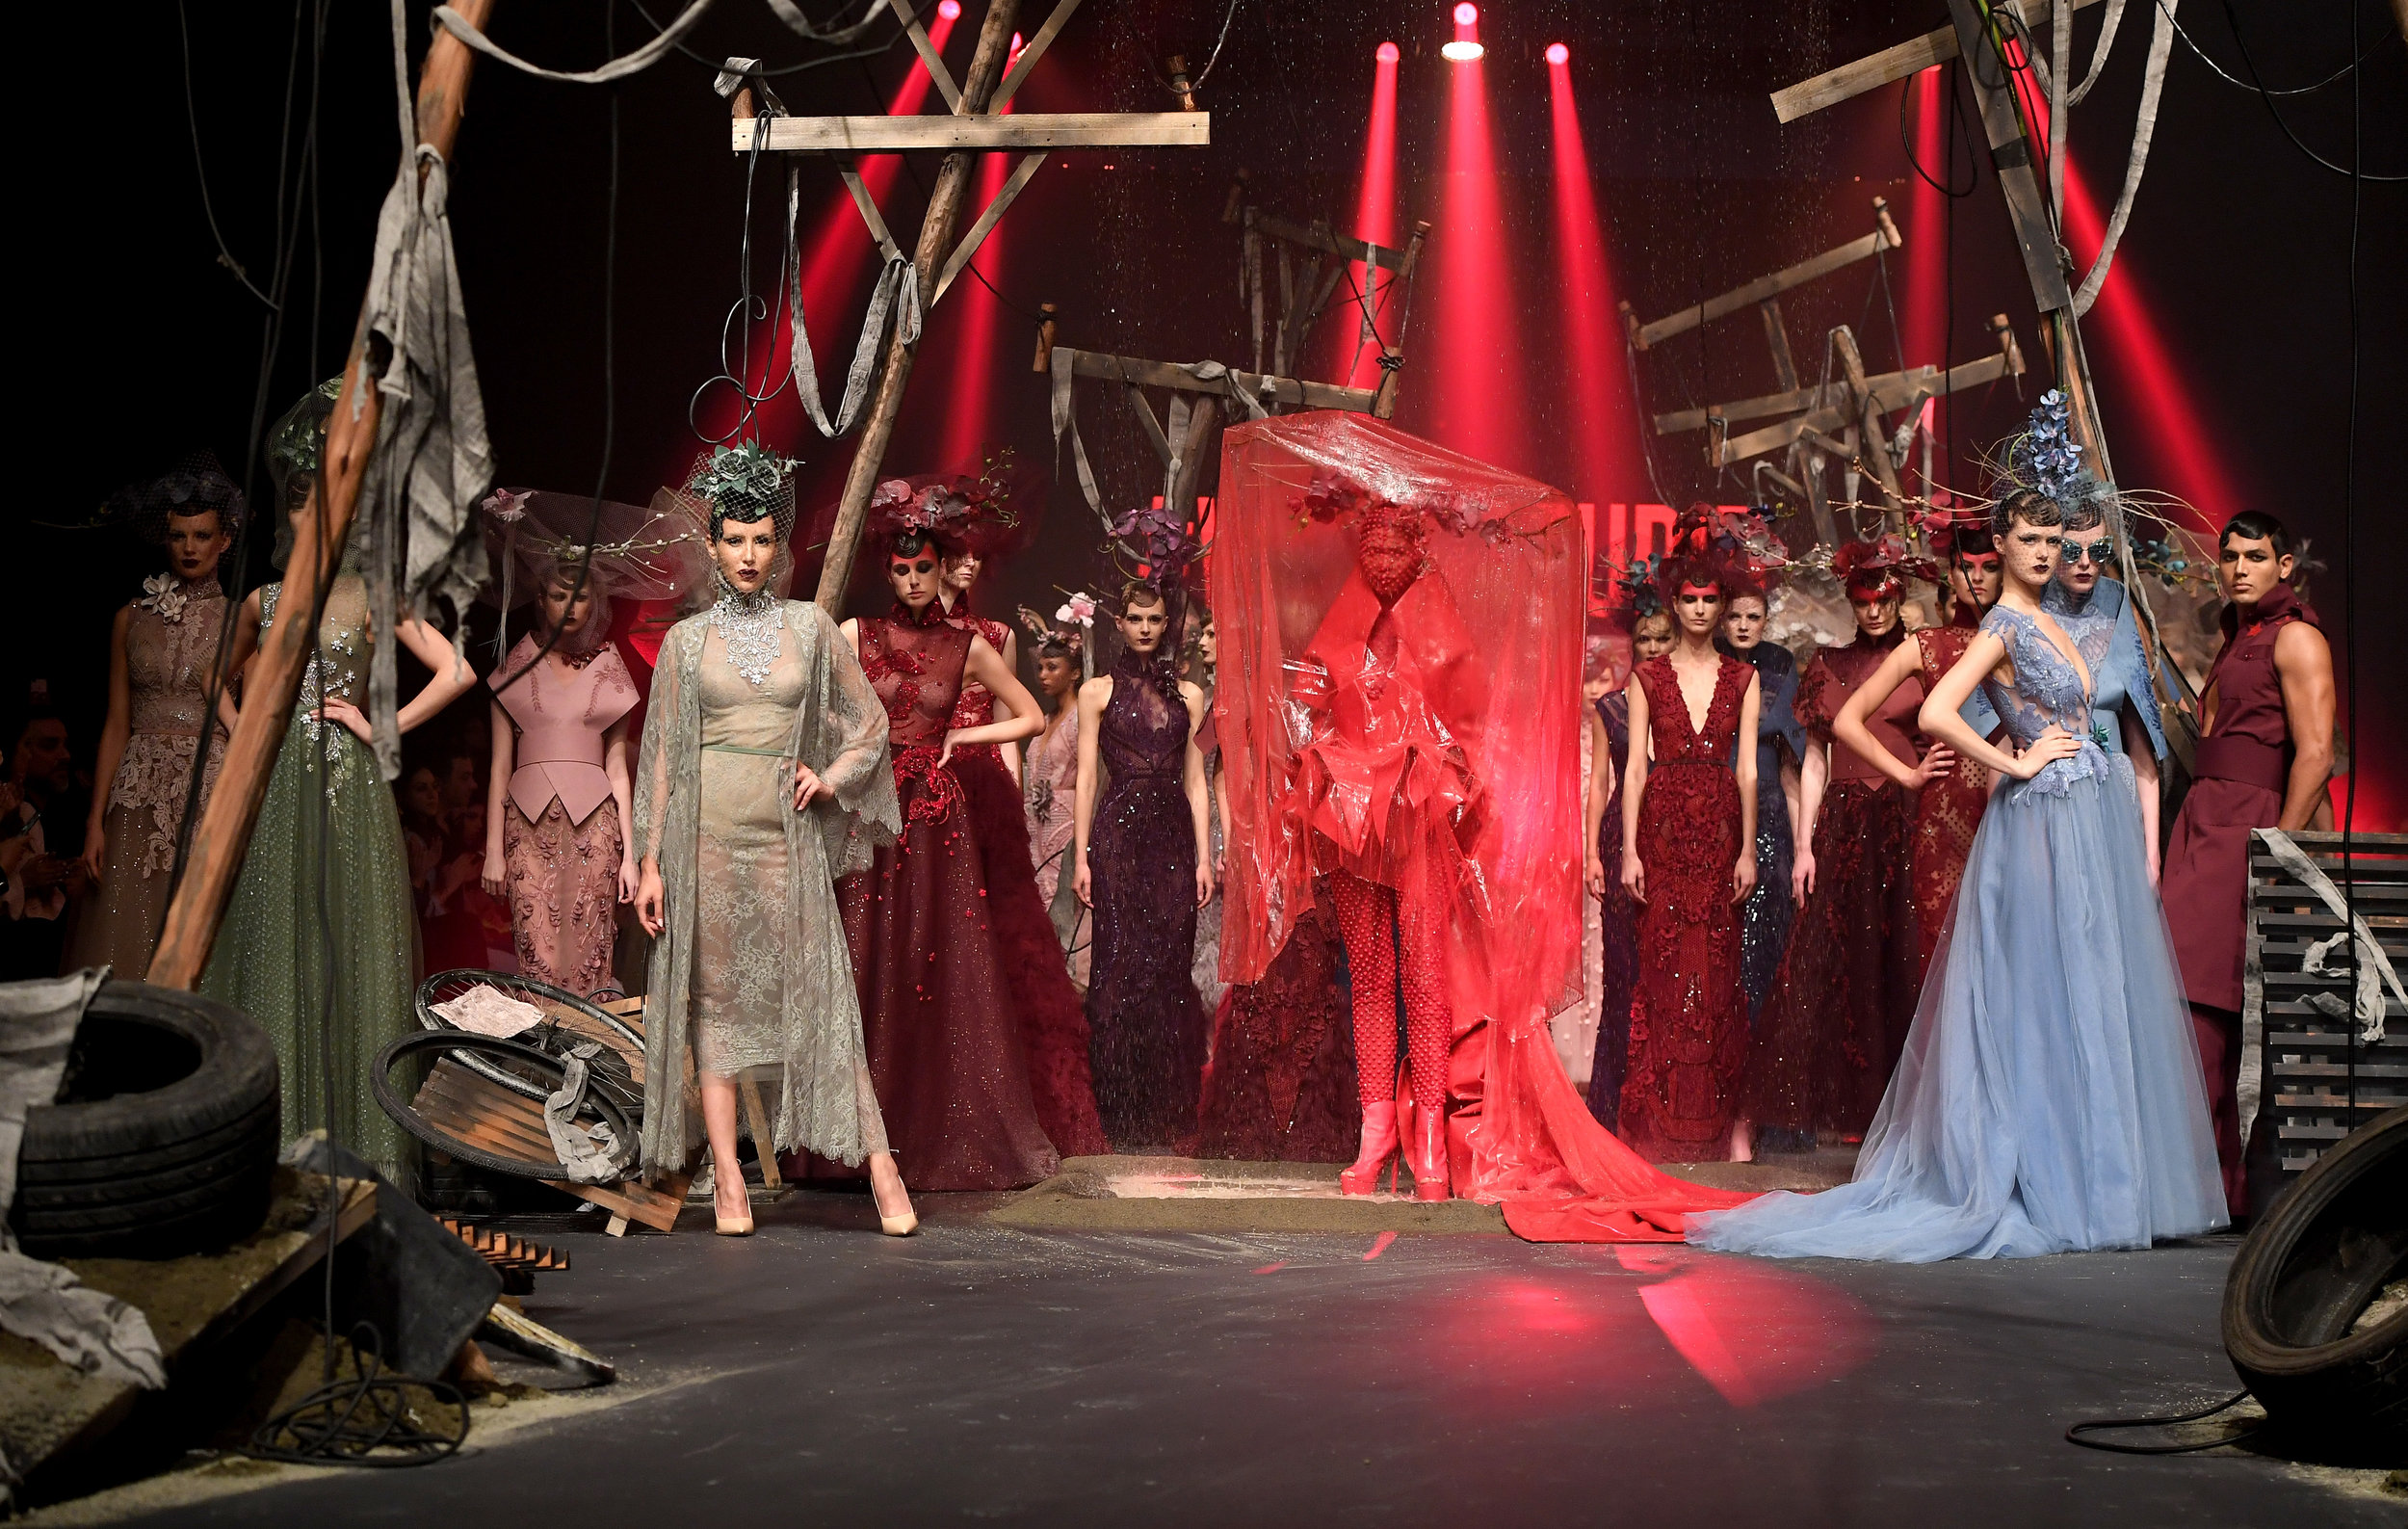 the icing on the cake - Amato's stunning runway show,